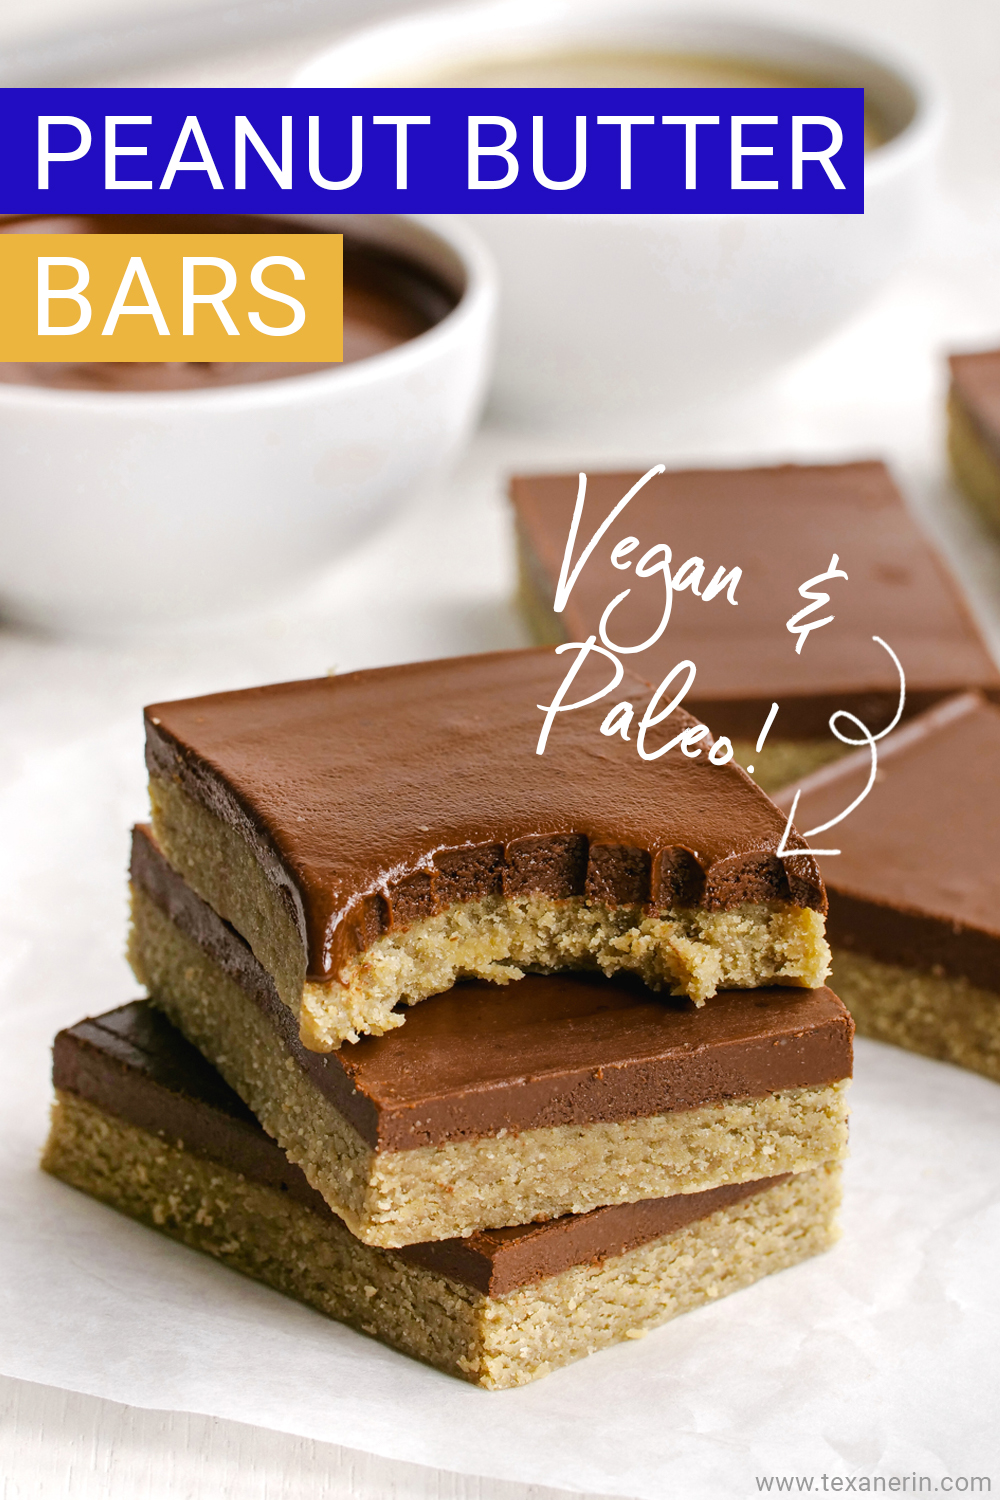 These amazingly delicious paleo peanut butter bars only use 5 ingredients, are no-bake, super easy to put together and are also vegan.